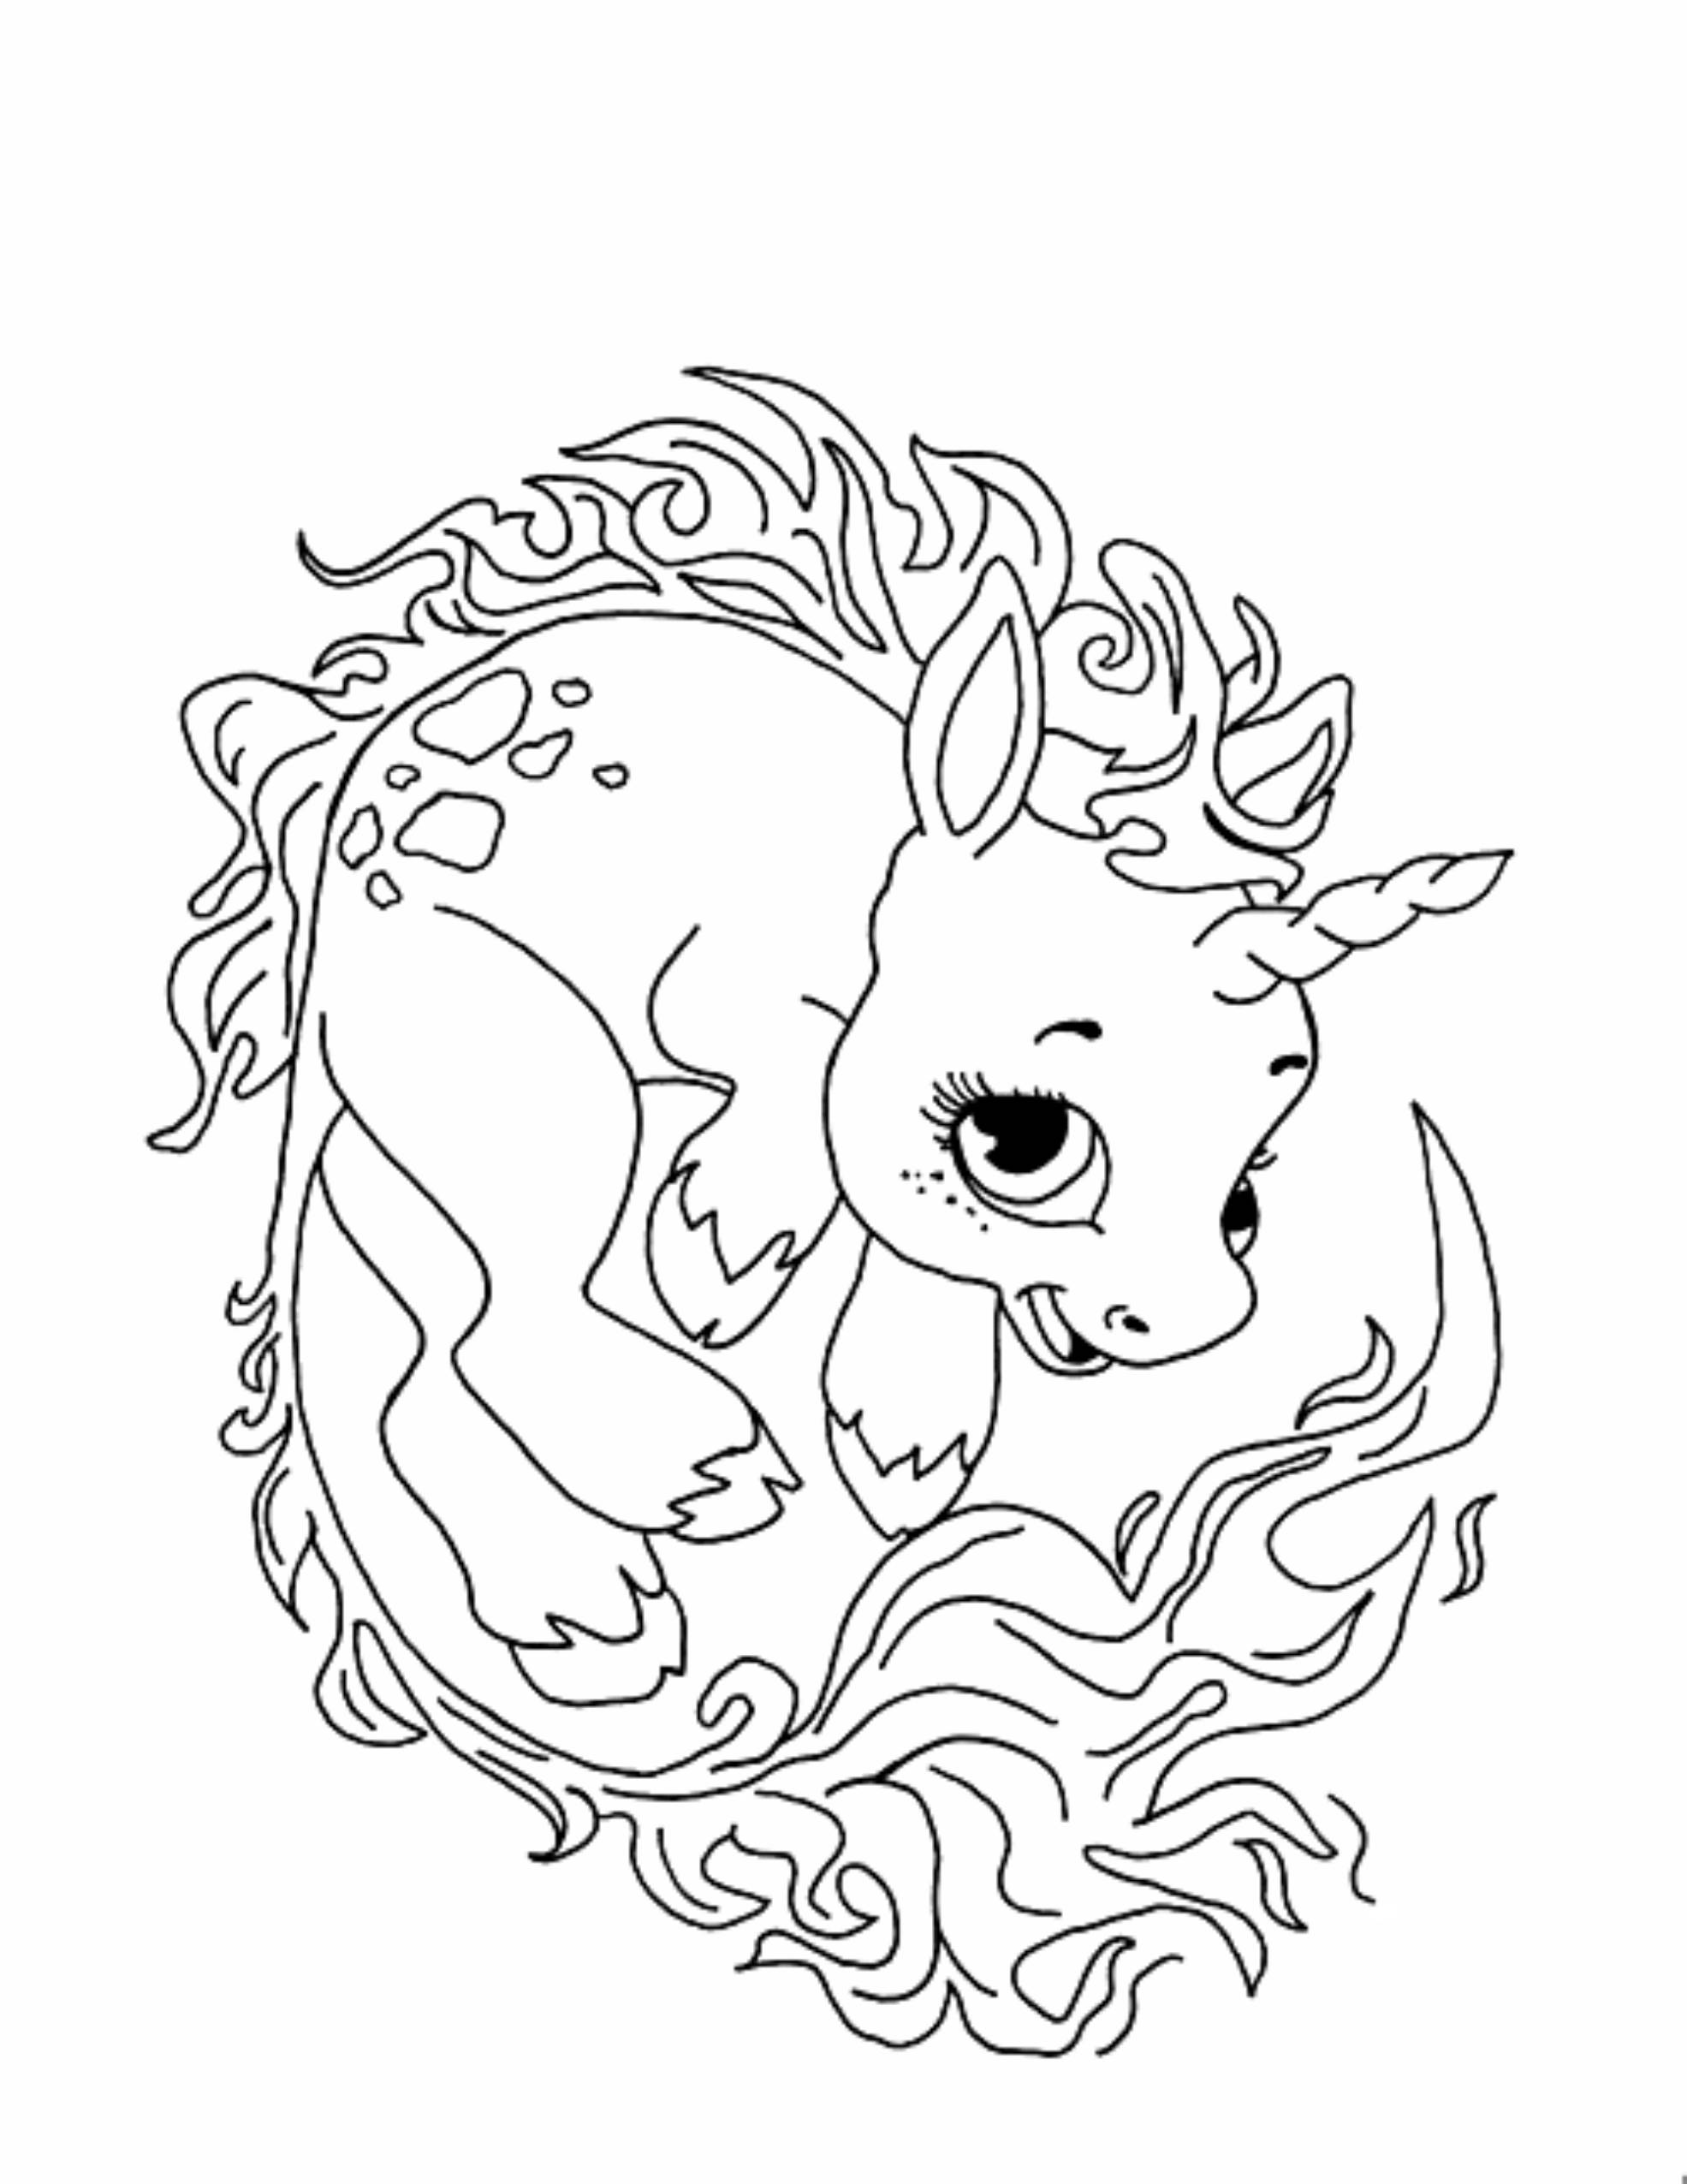 cute easy unicorn coloring pages top 50 free printable unicorn coloring pages online easy unicorn pages cute coloring